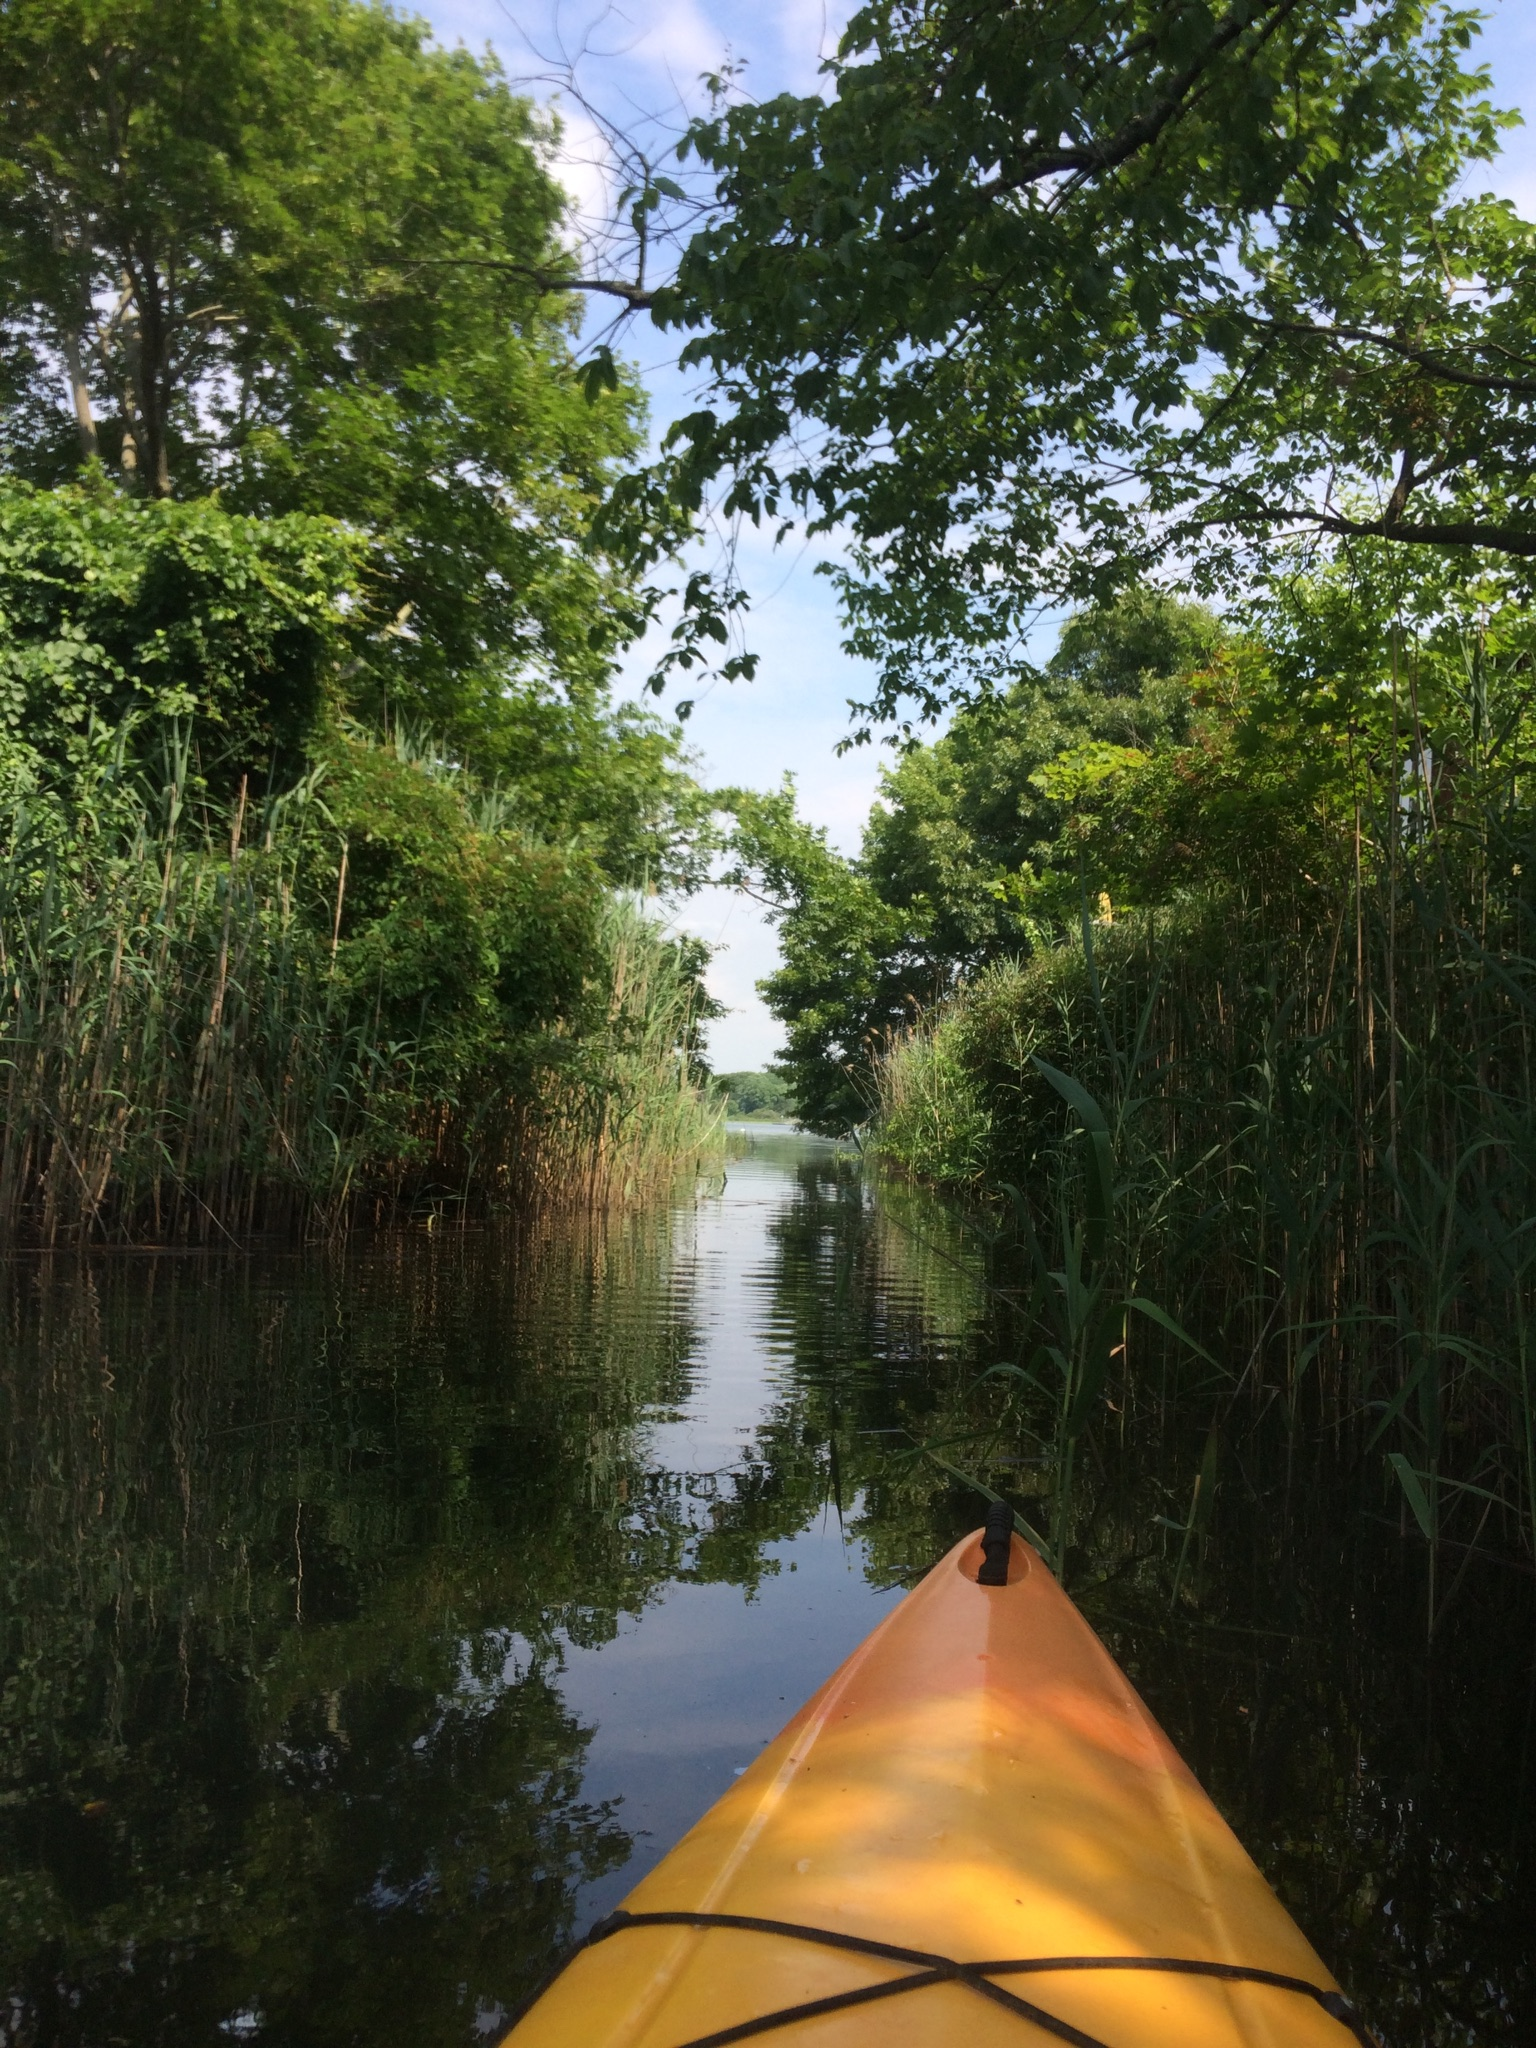 kayak on the water under trees